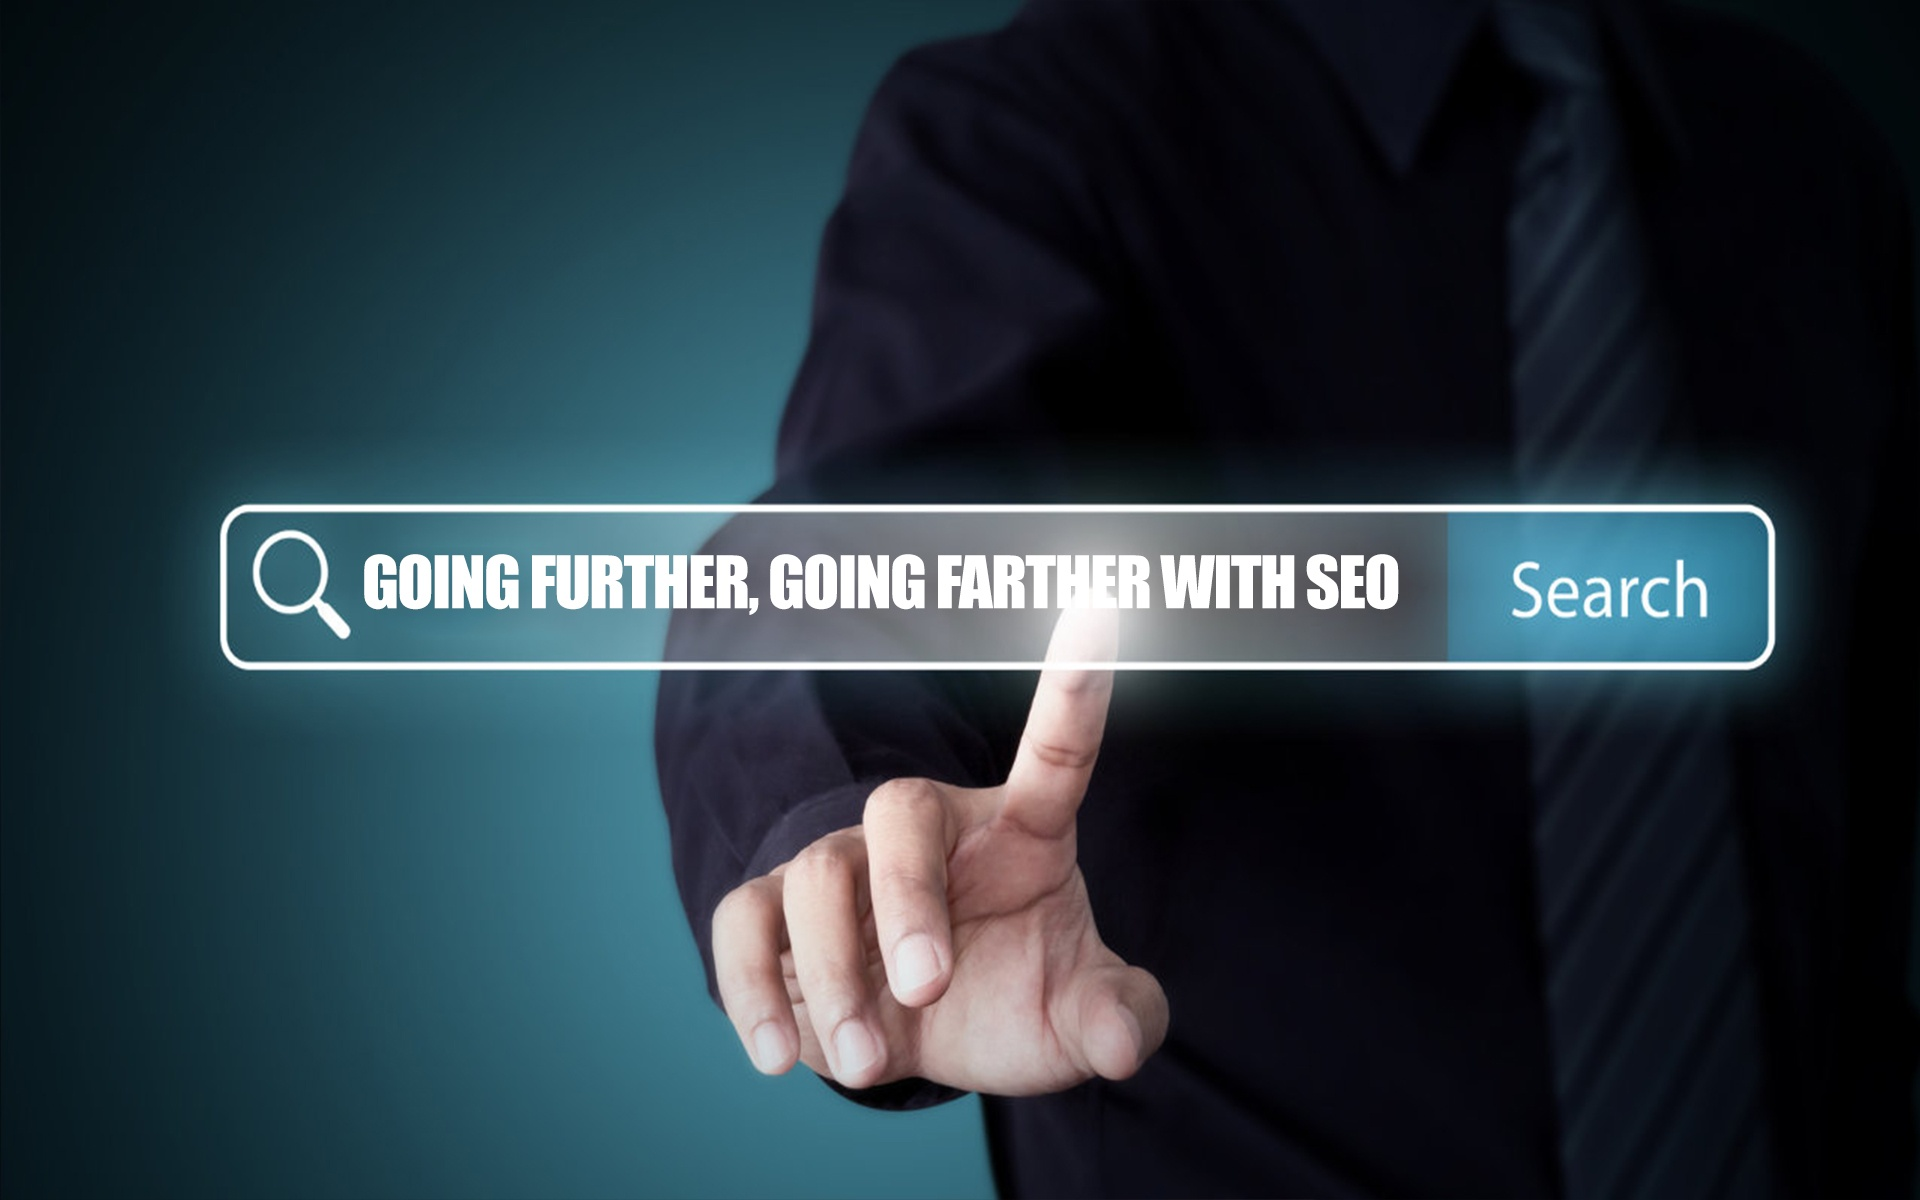 Going Further, Going Farther with SEO